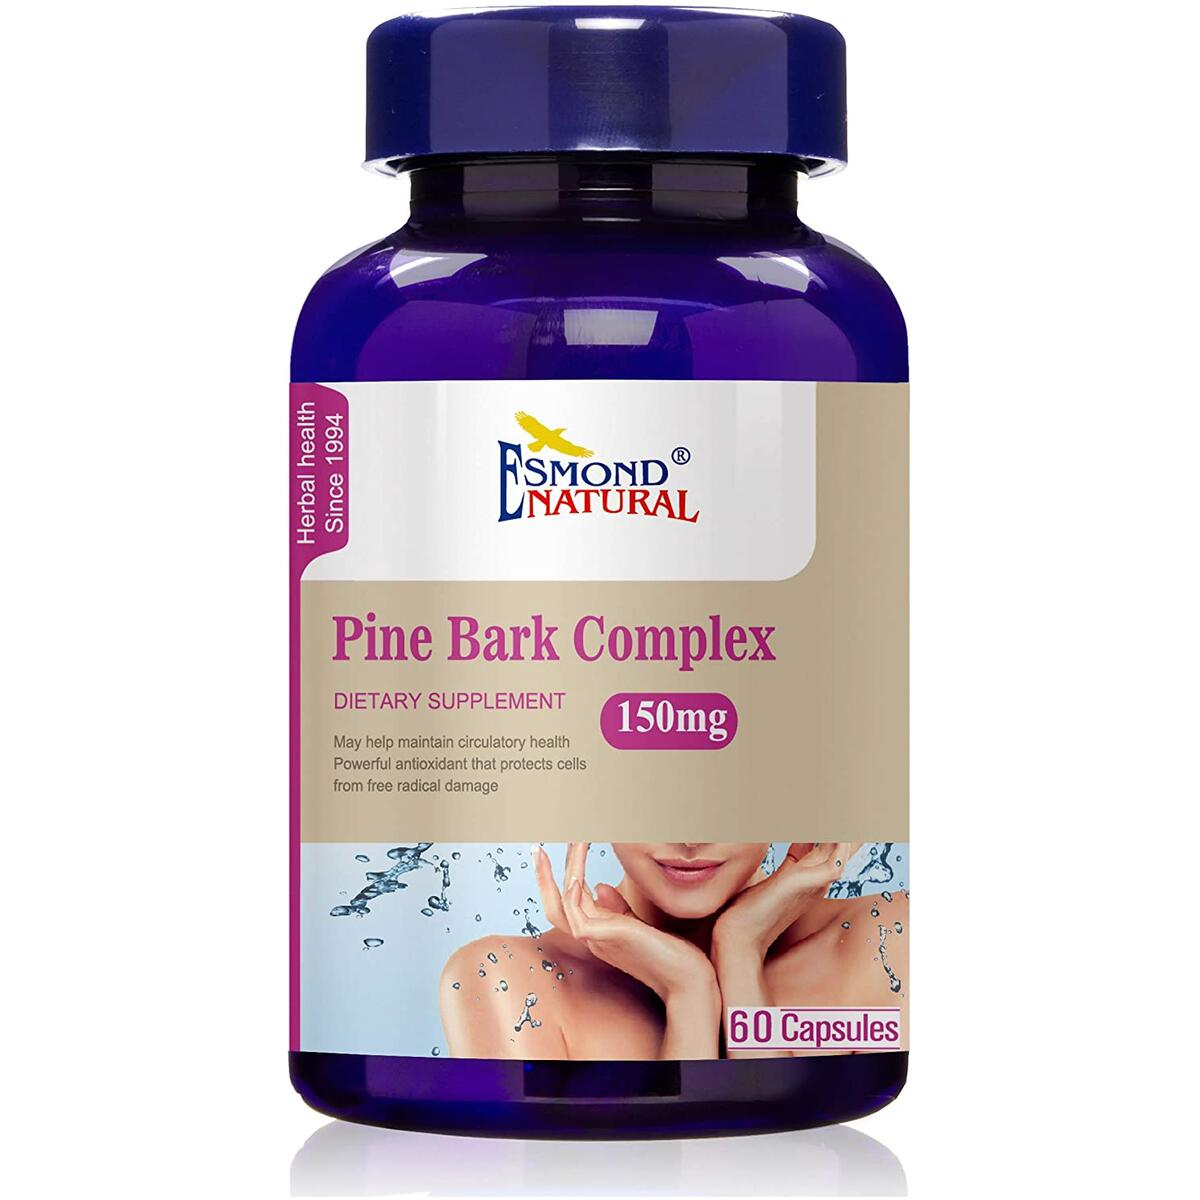 (3 Count, 10% Off) Esmond Natural: Pine Bark Complex (Antioxidants to Protect Cells from Free Radical Damage), GMP, Natural Product Assn Certified, Made in USA-150mg, 180 Capsules